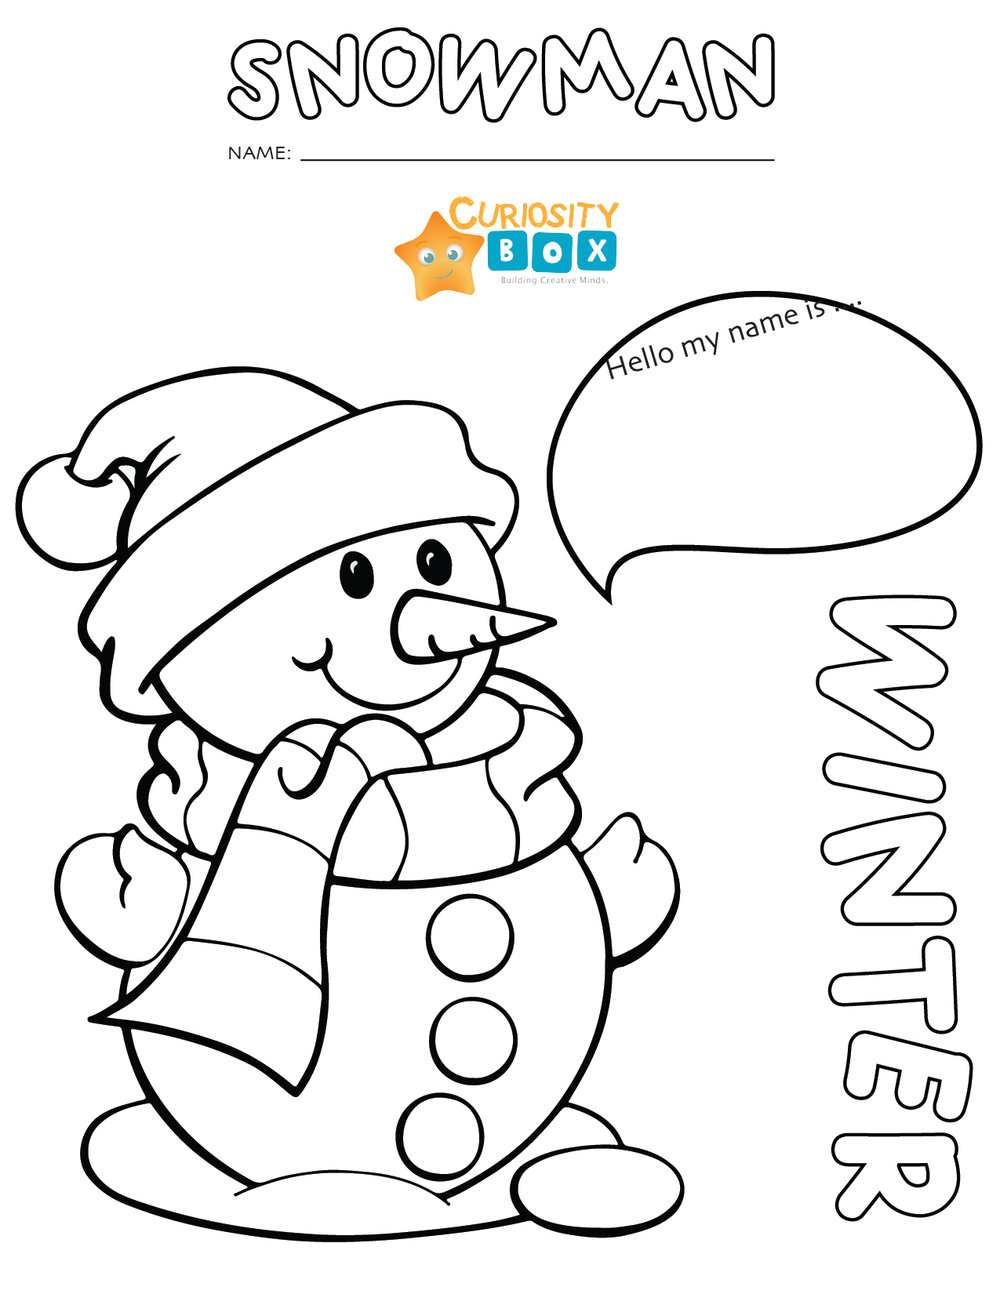 CB_FreeSnowman-PRINTABLE-01.jpg